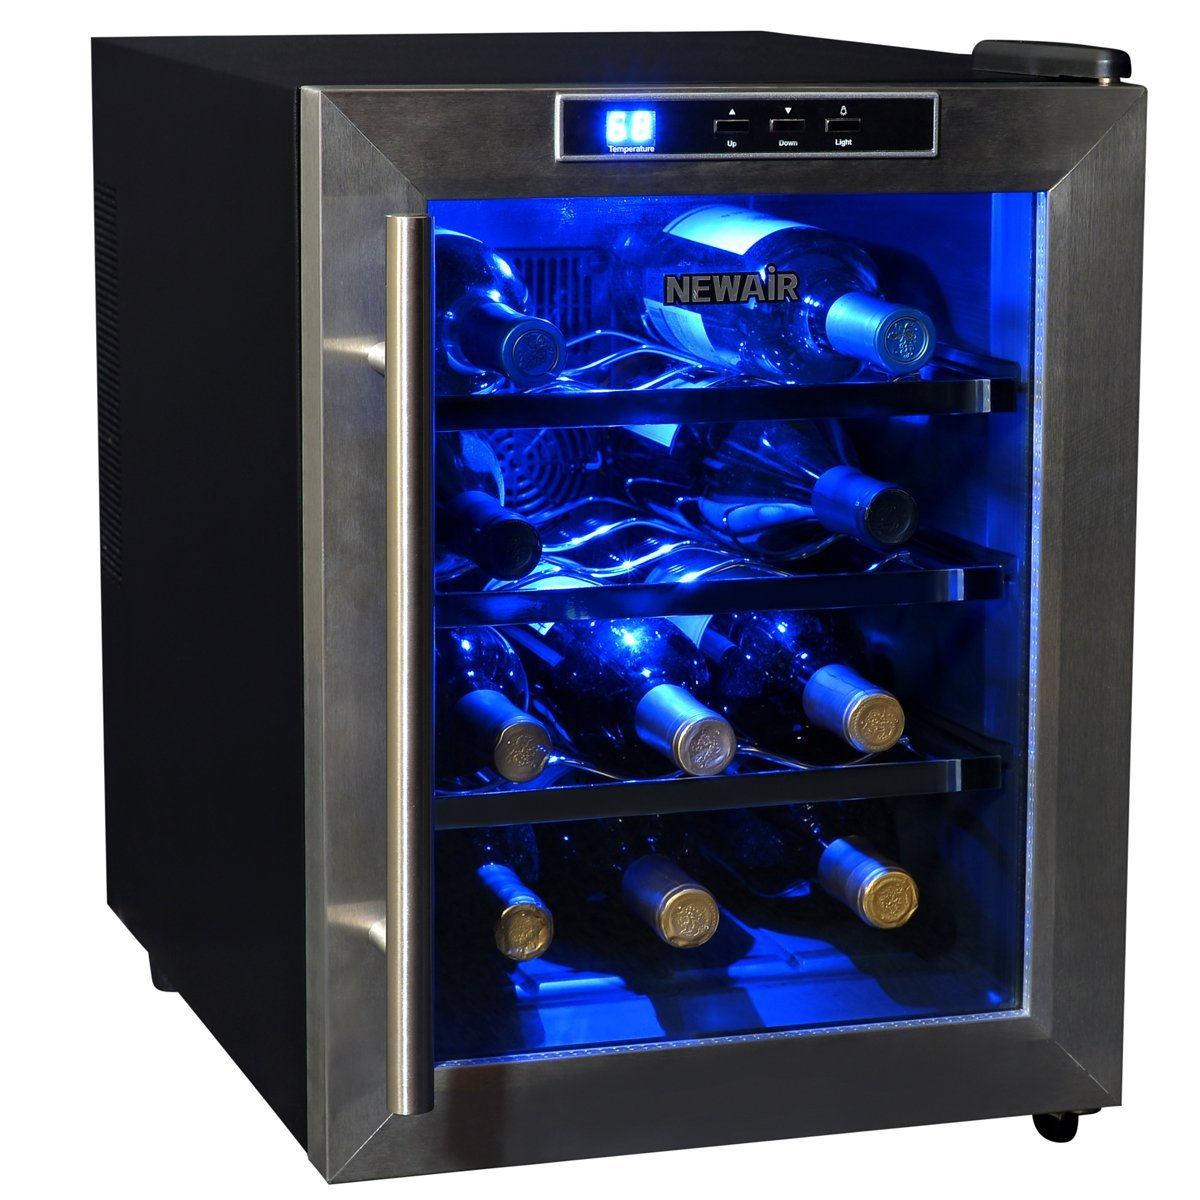 refrigerator countertop wine steel counter bottle com amazon dp stainless cooler top appliances kalamera